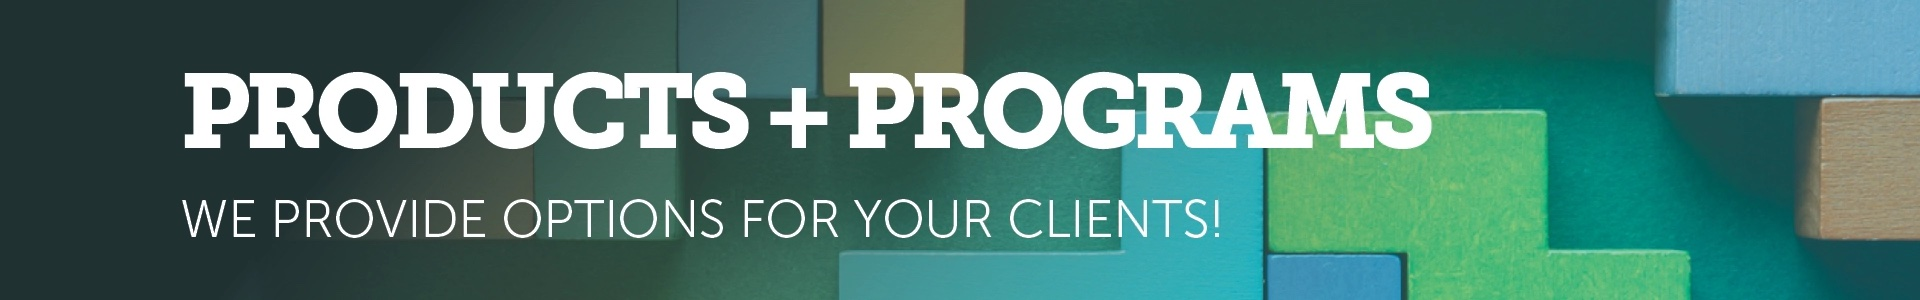 Products and Programs banner